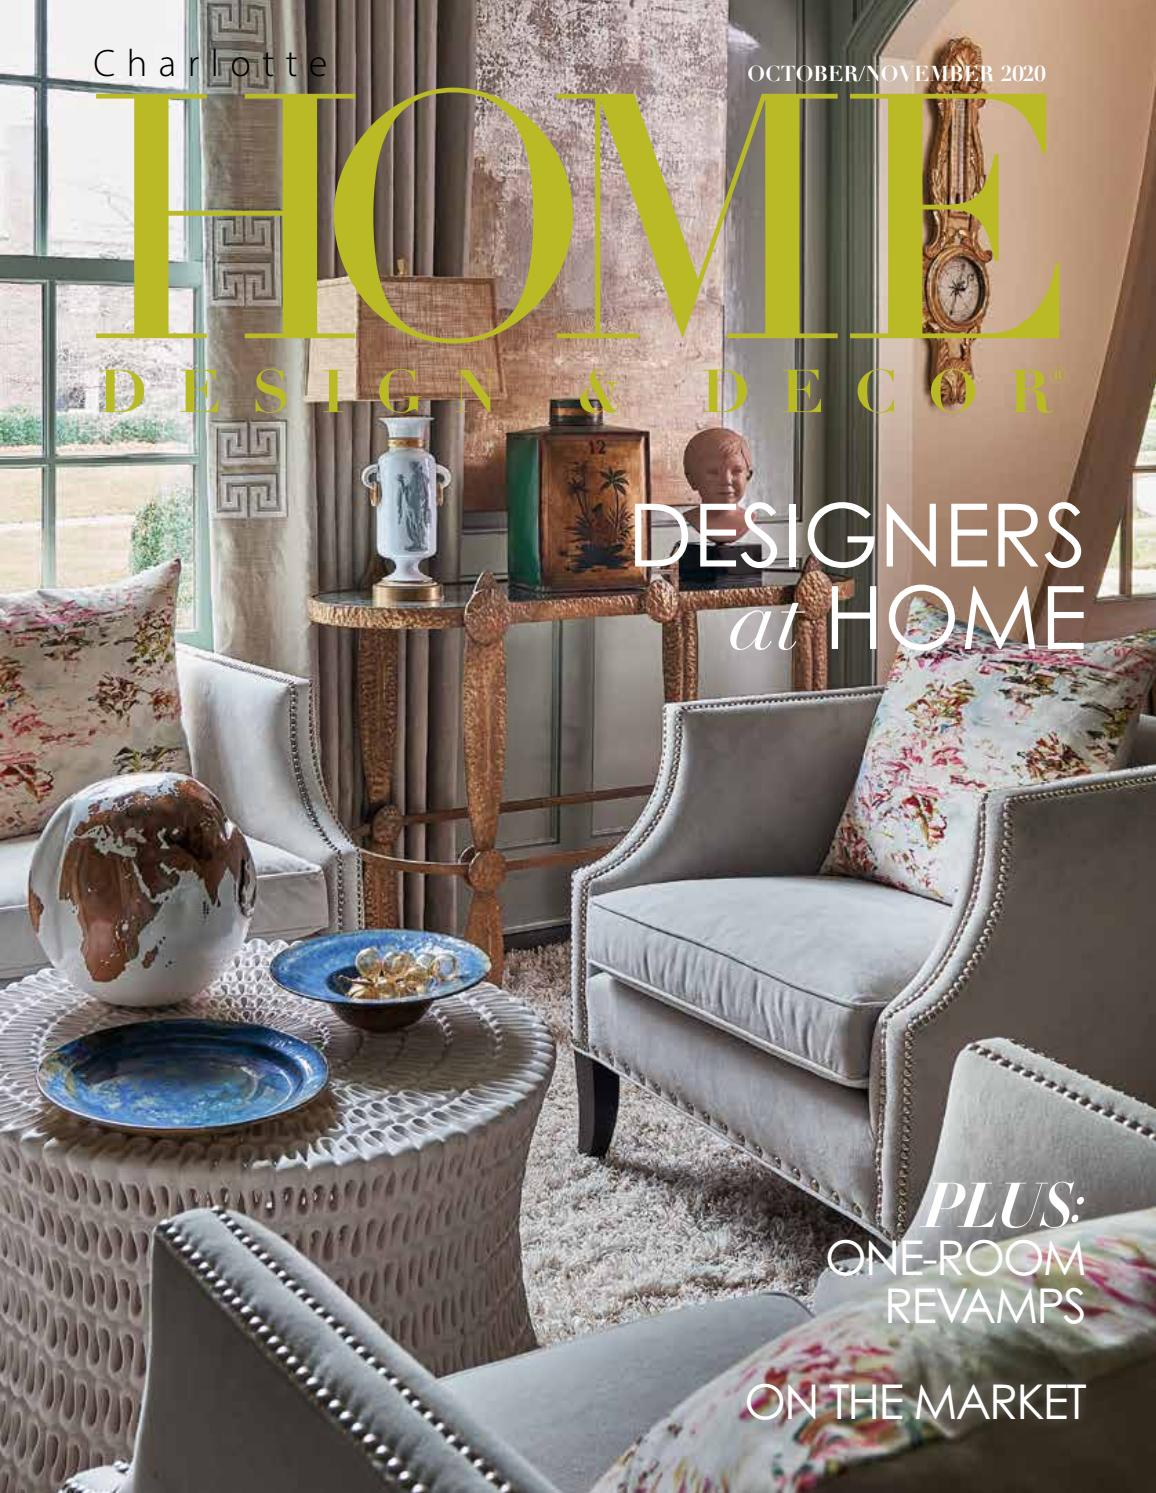 Hdd Charlotte October November 2020 By Home Design Decor Magazine Issuu